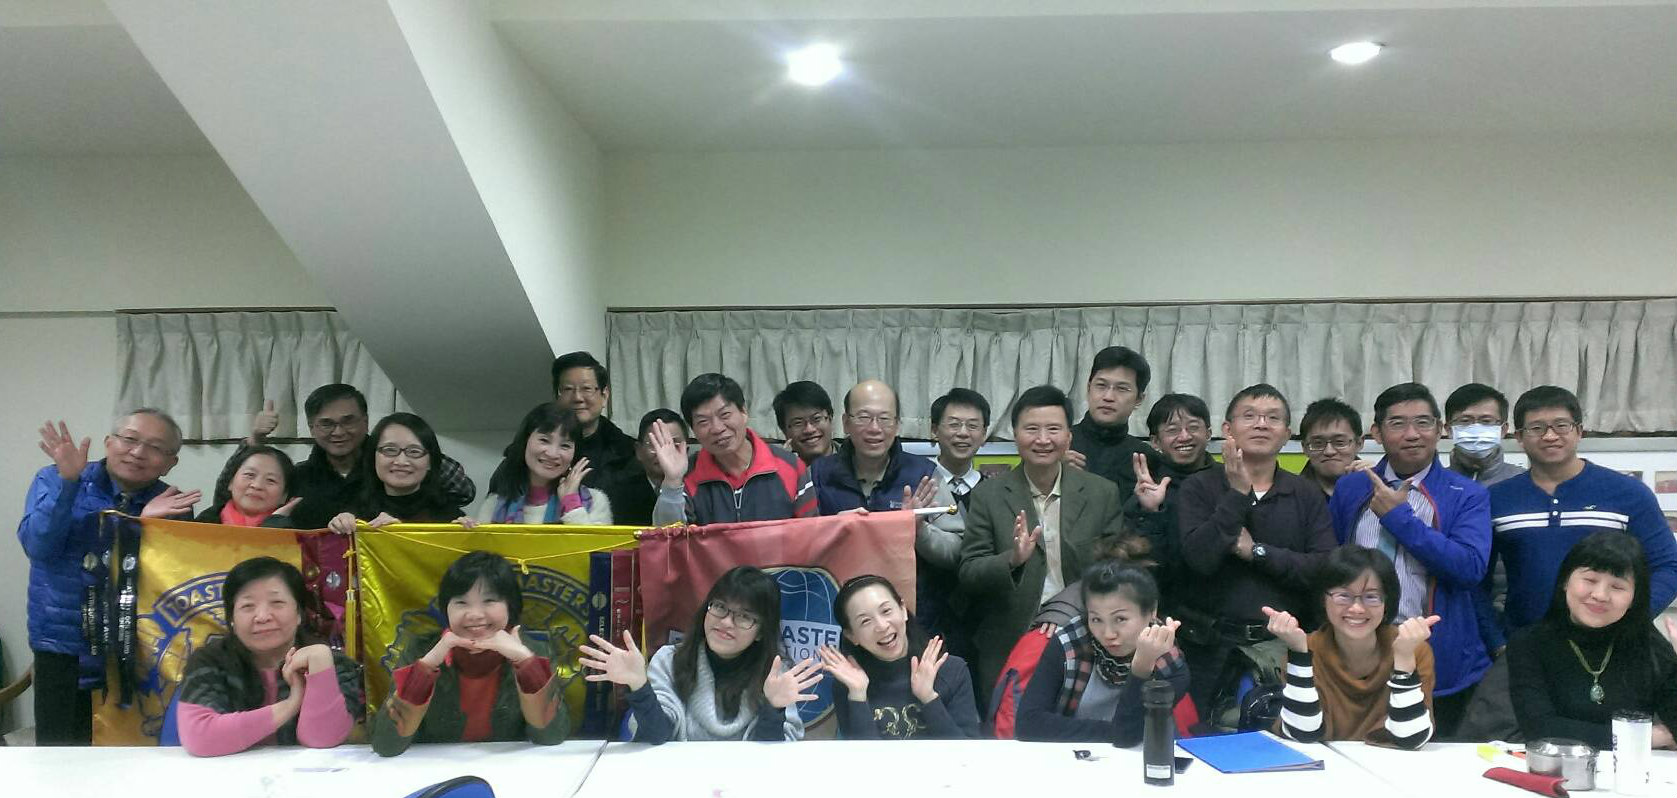 A joint Toastmasters Club meeting was held in Keelung City earlier this year. (Image: Courtesy of Happy Life Toastmaster Club)